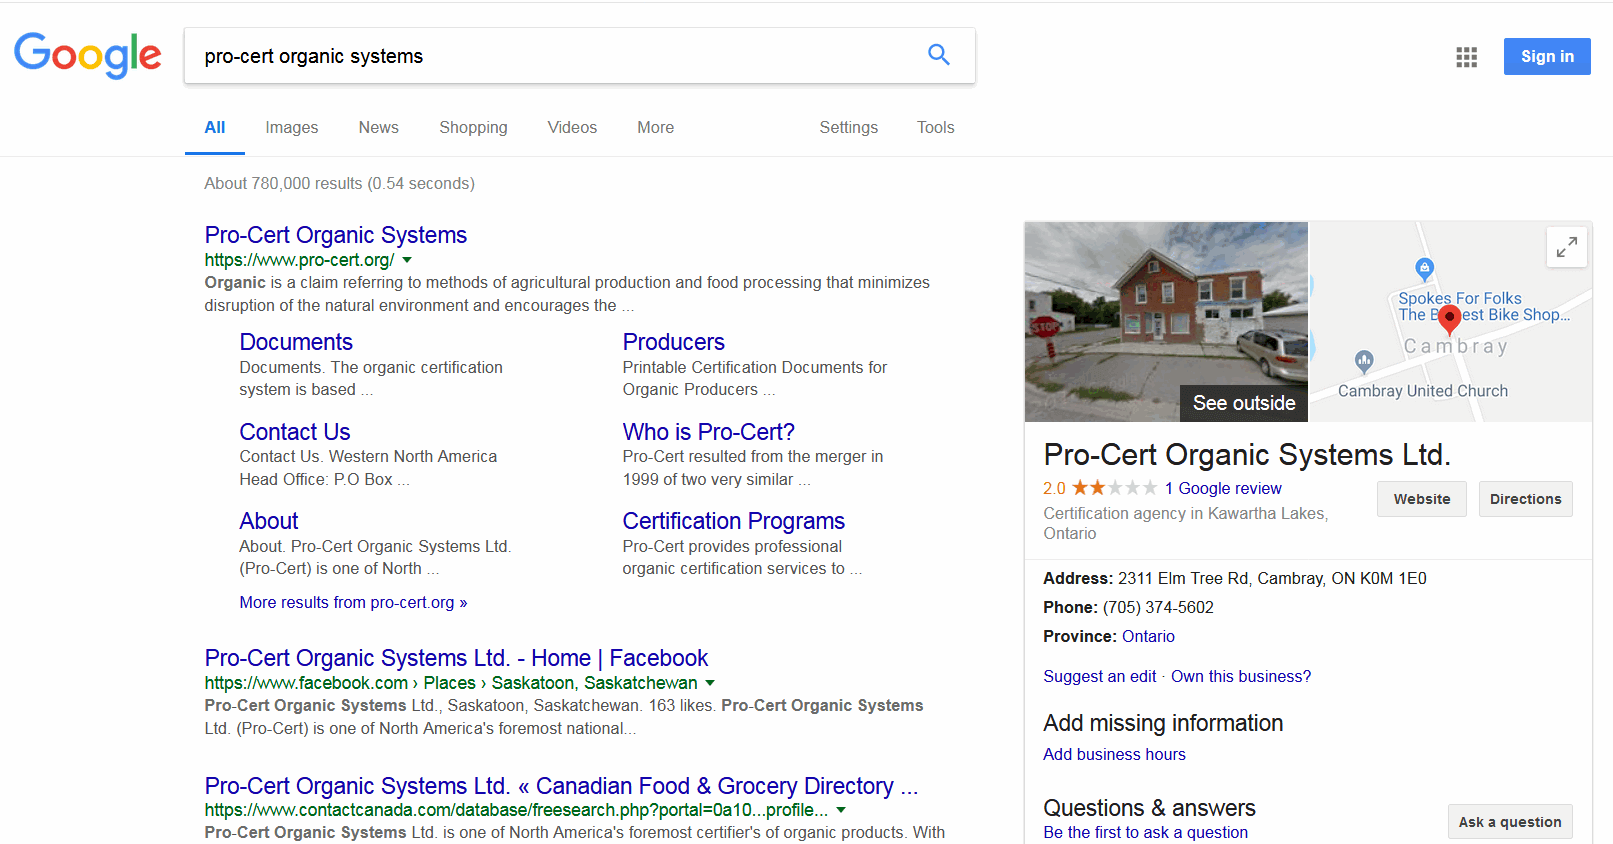 screen print of my Google search results for pro-cert organic systems